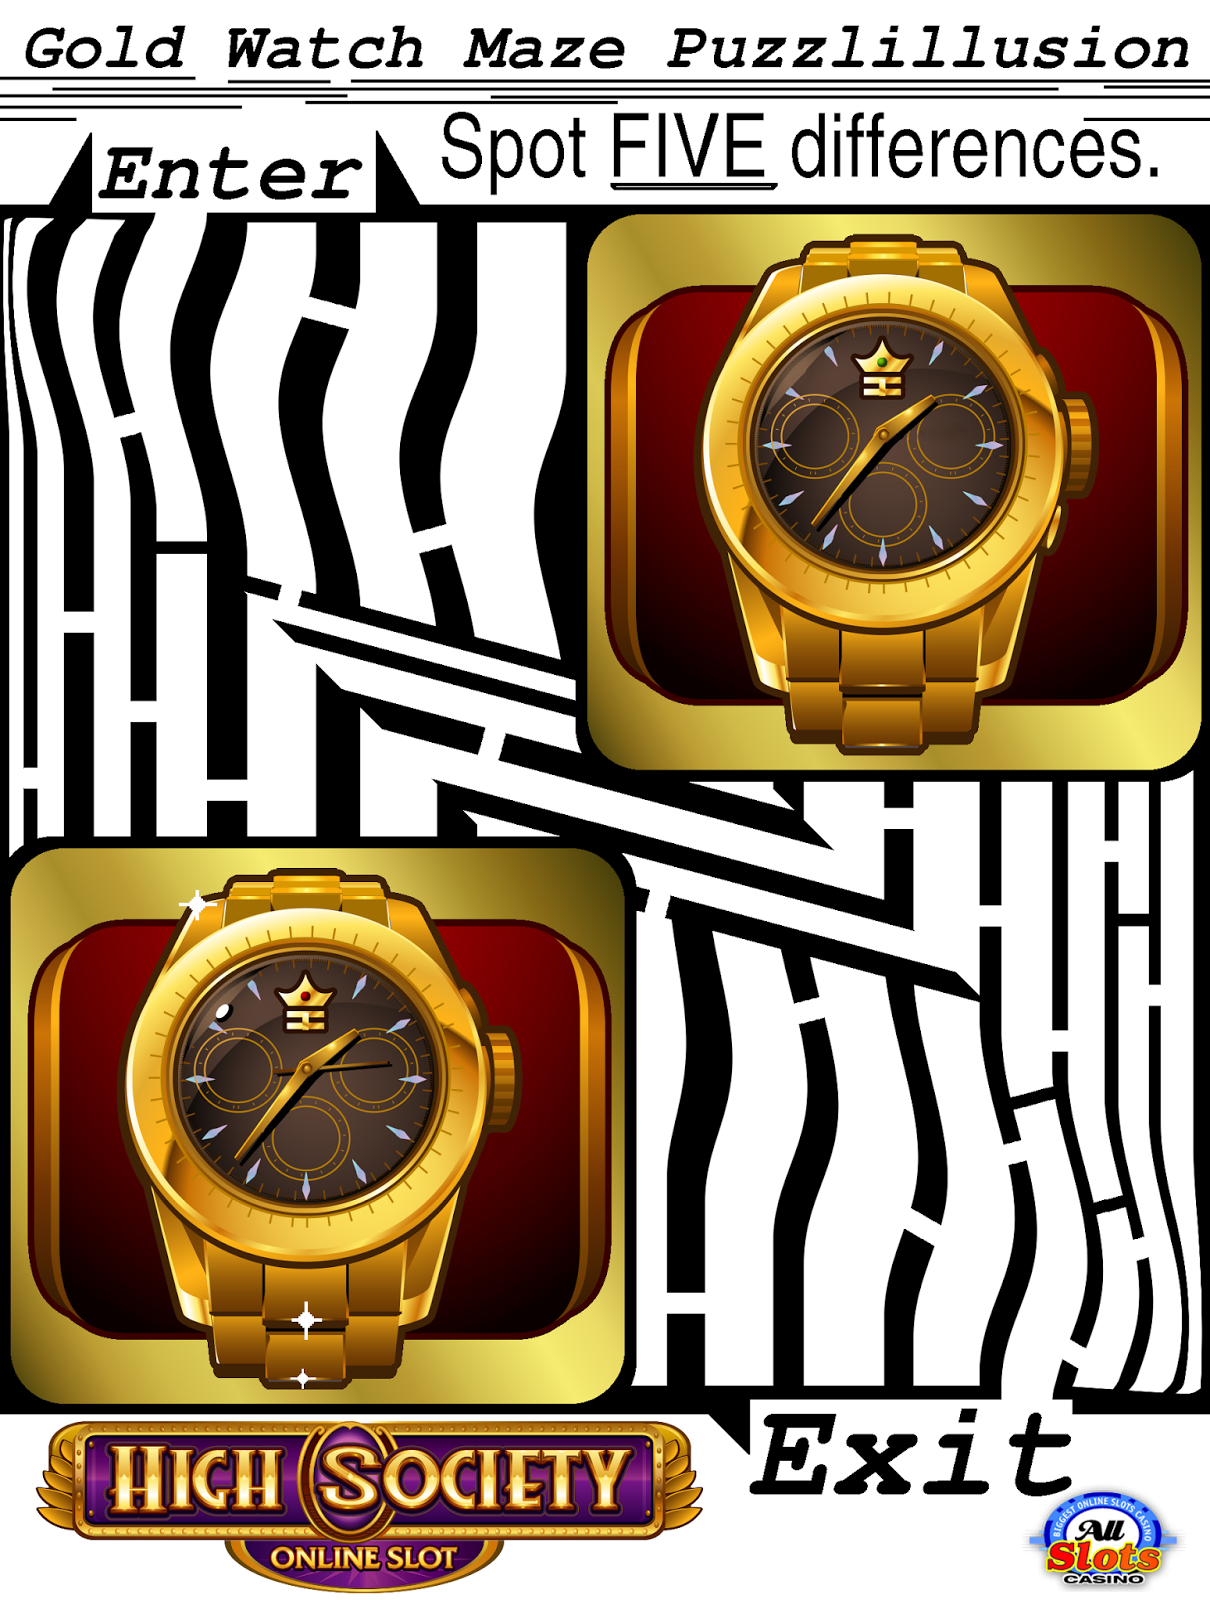 vip maze puzzlillusion of a golden watch